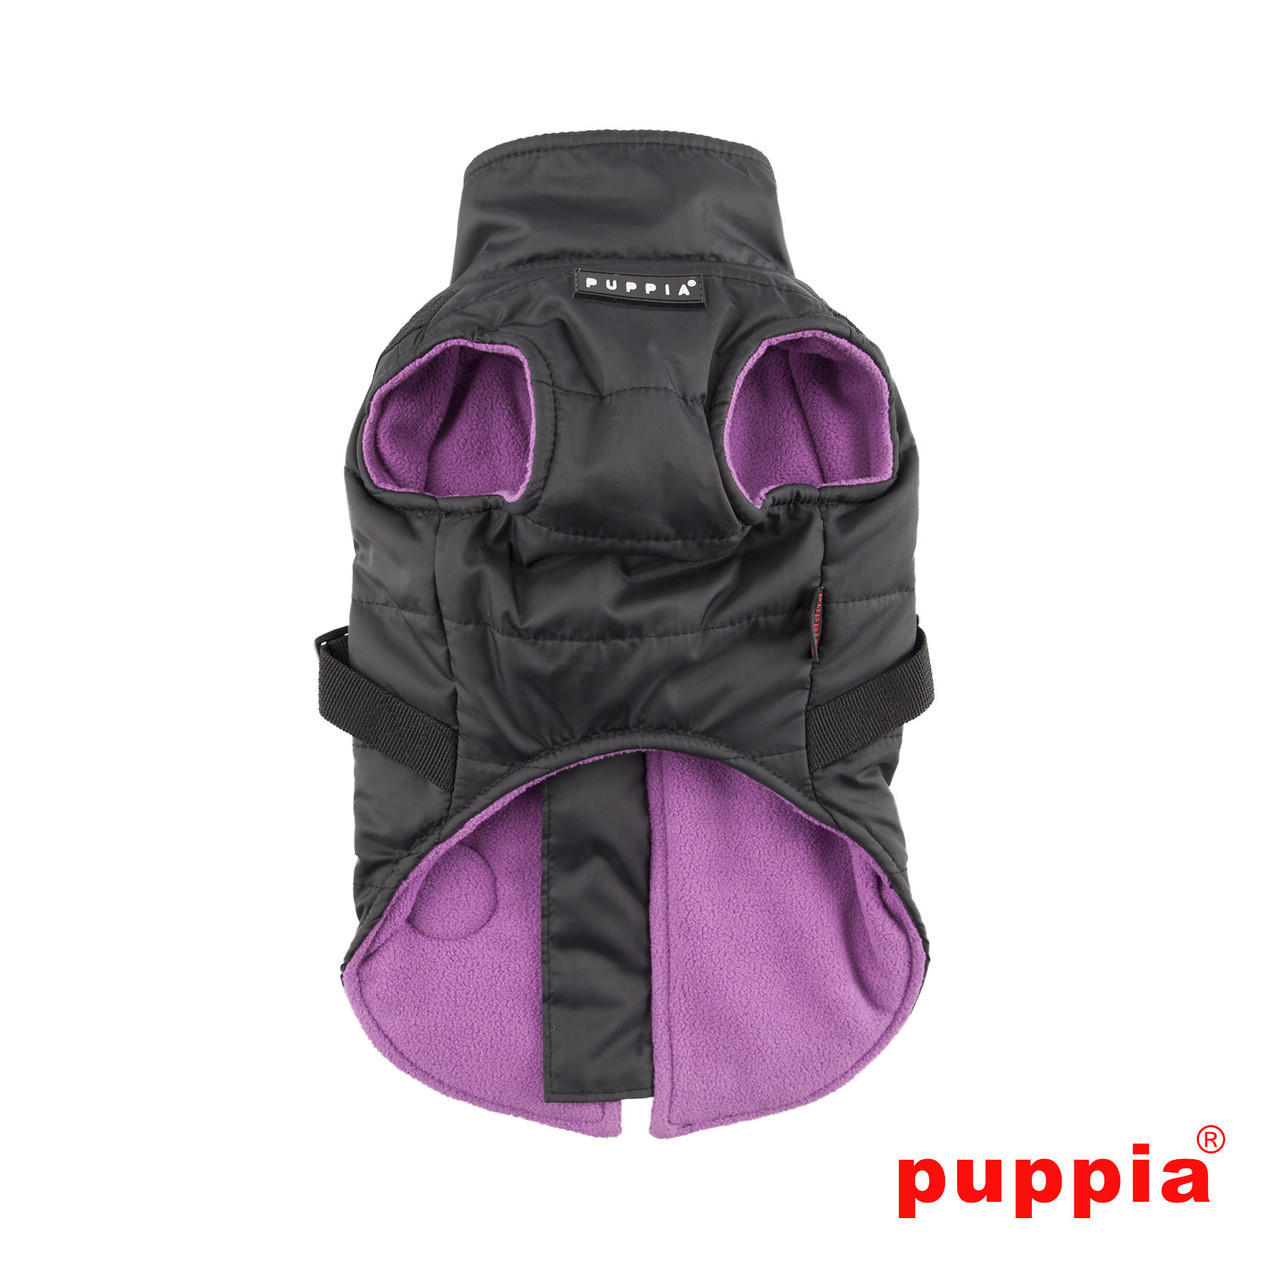 Puppia Mountaineer Coat in black back side